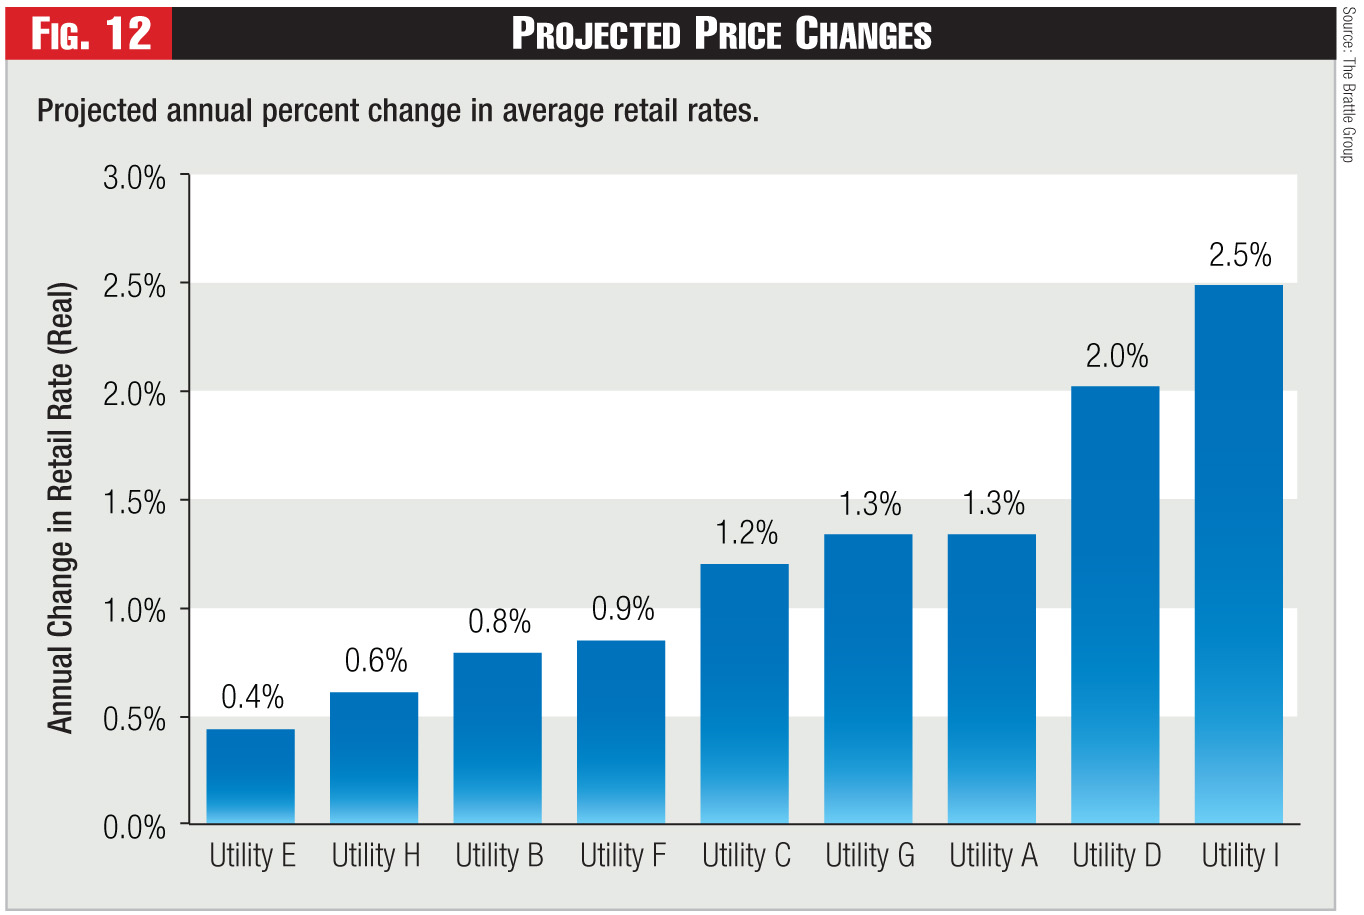 Figure 12 - Projected Price Changes